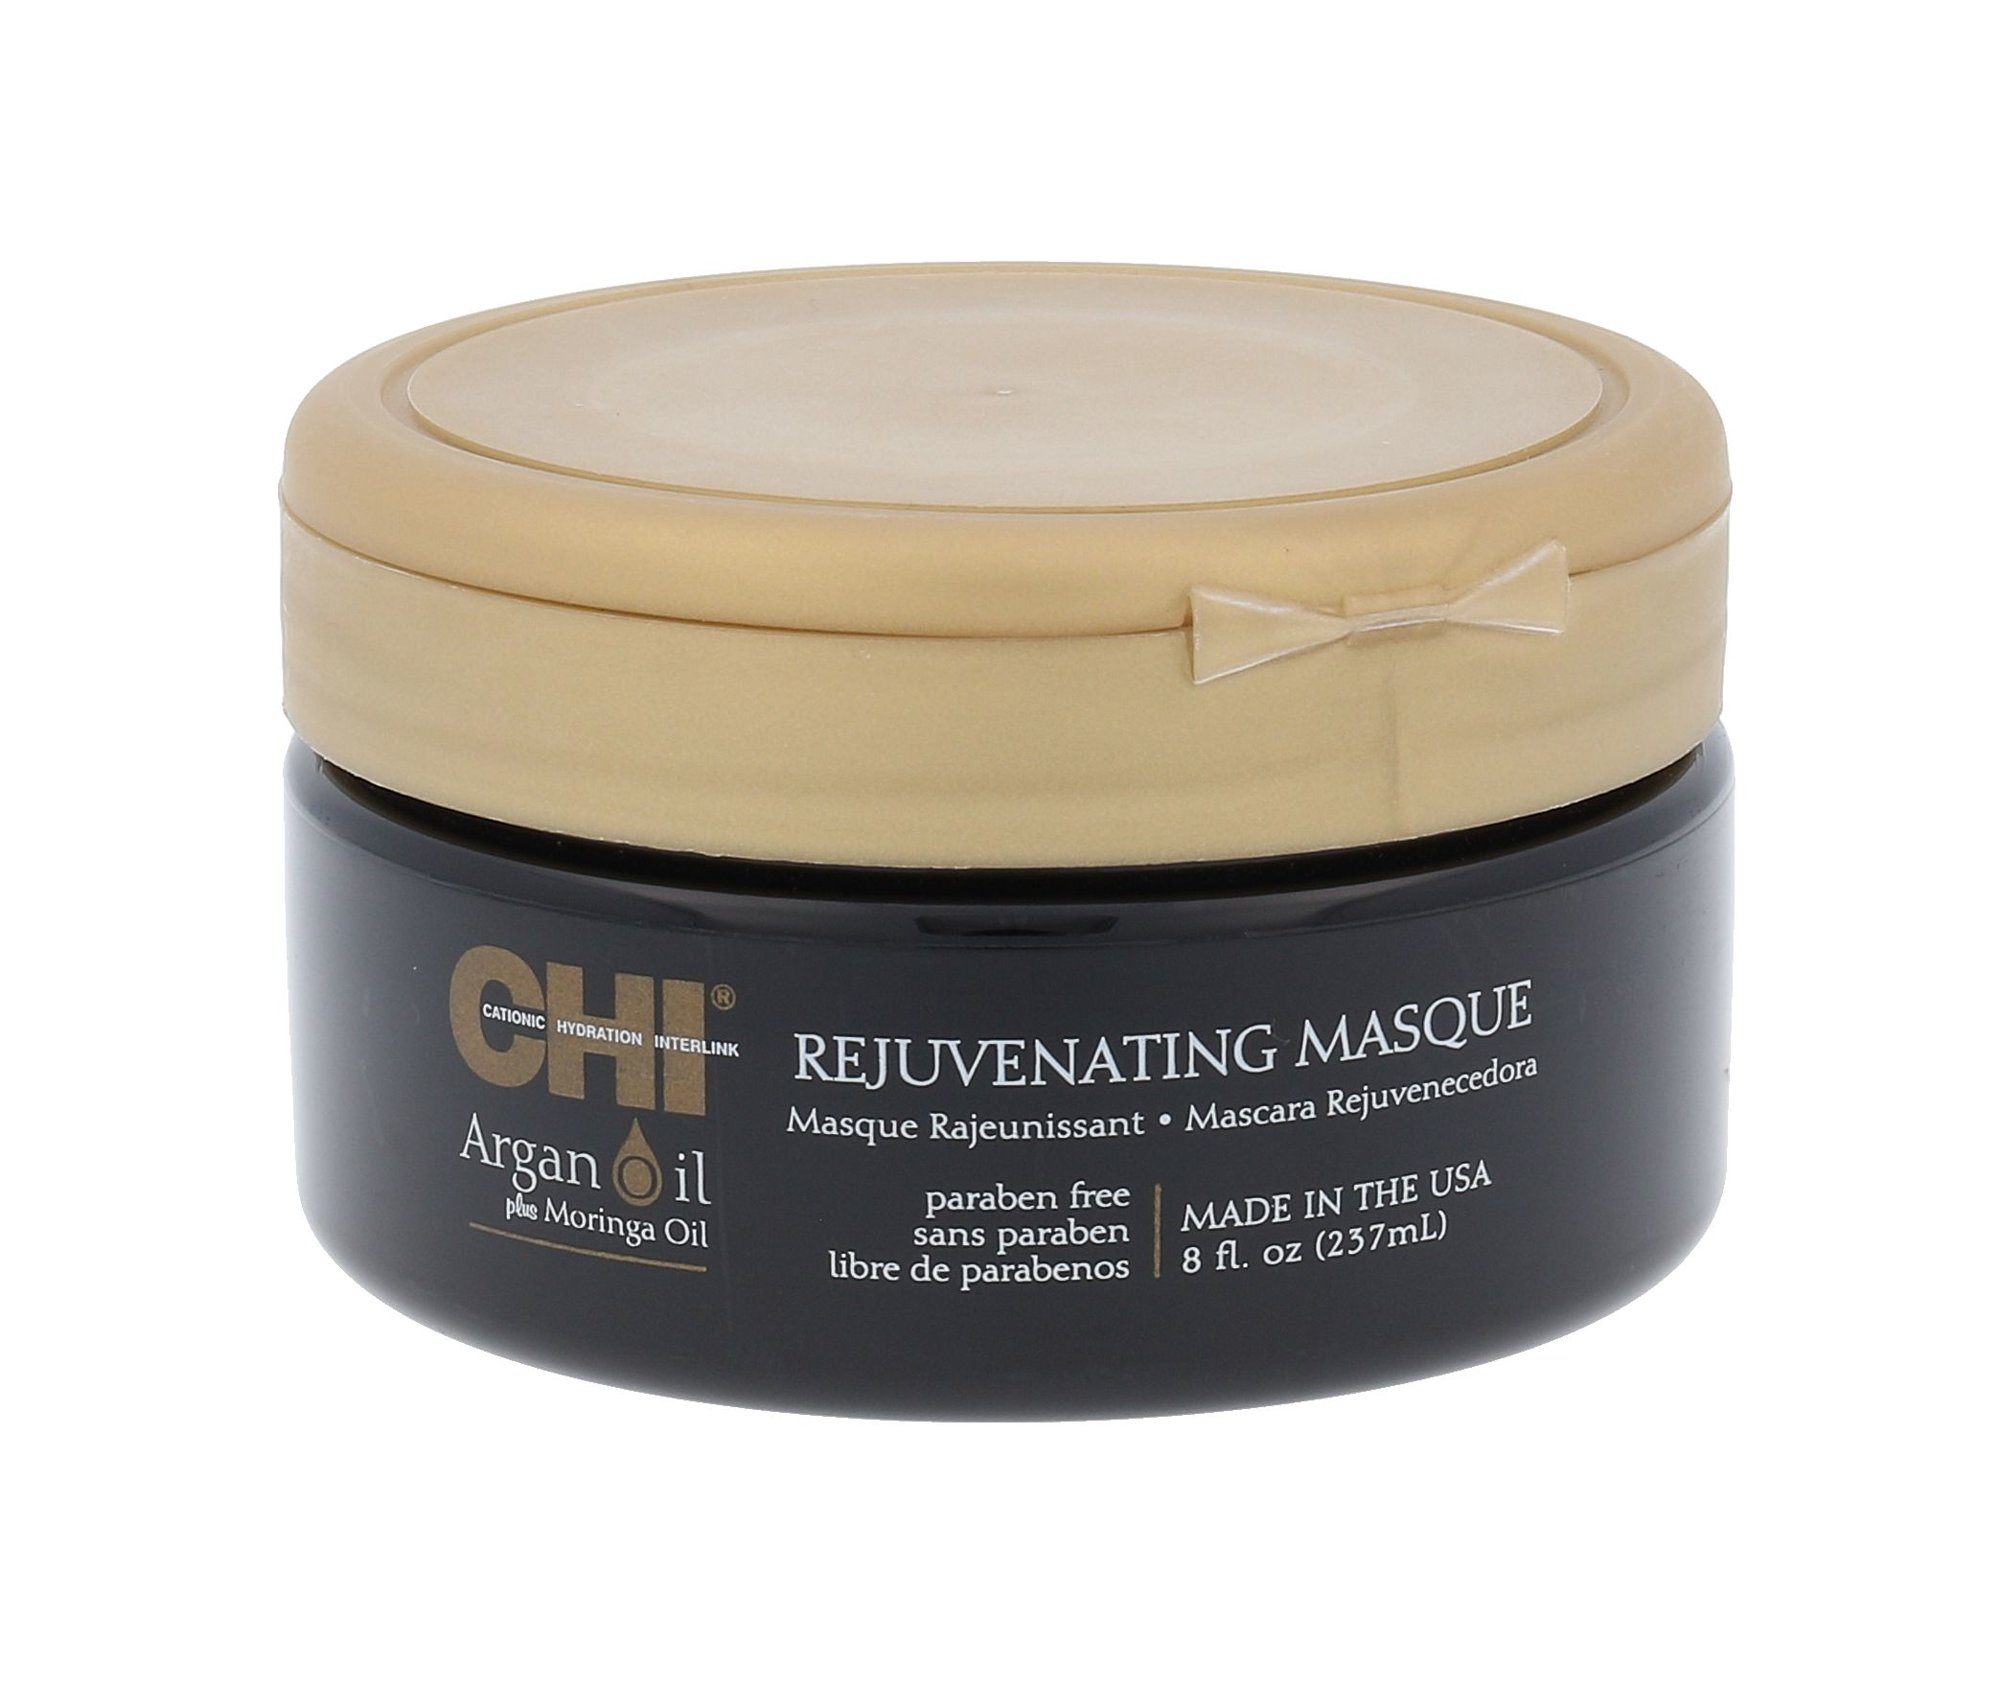 Farouk Systems CHI Argan Oil Plus Moringa Oil Rejuvenating Masque Cosmetic 237ml